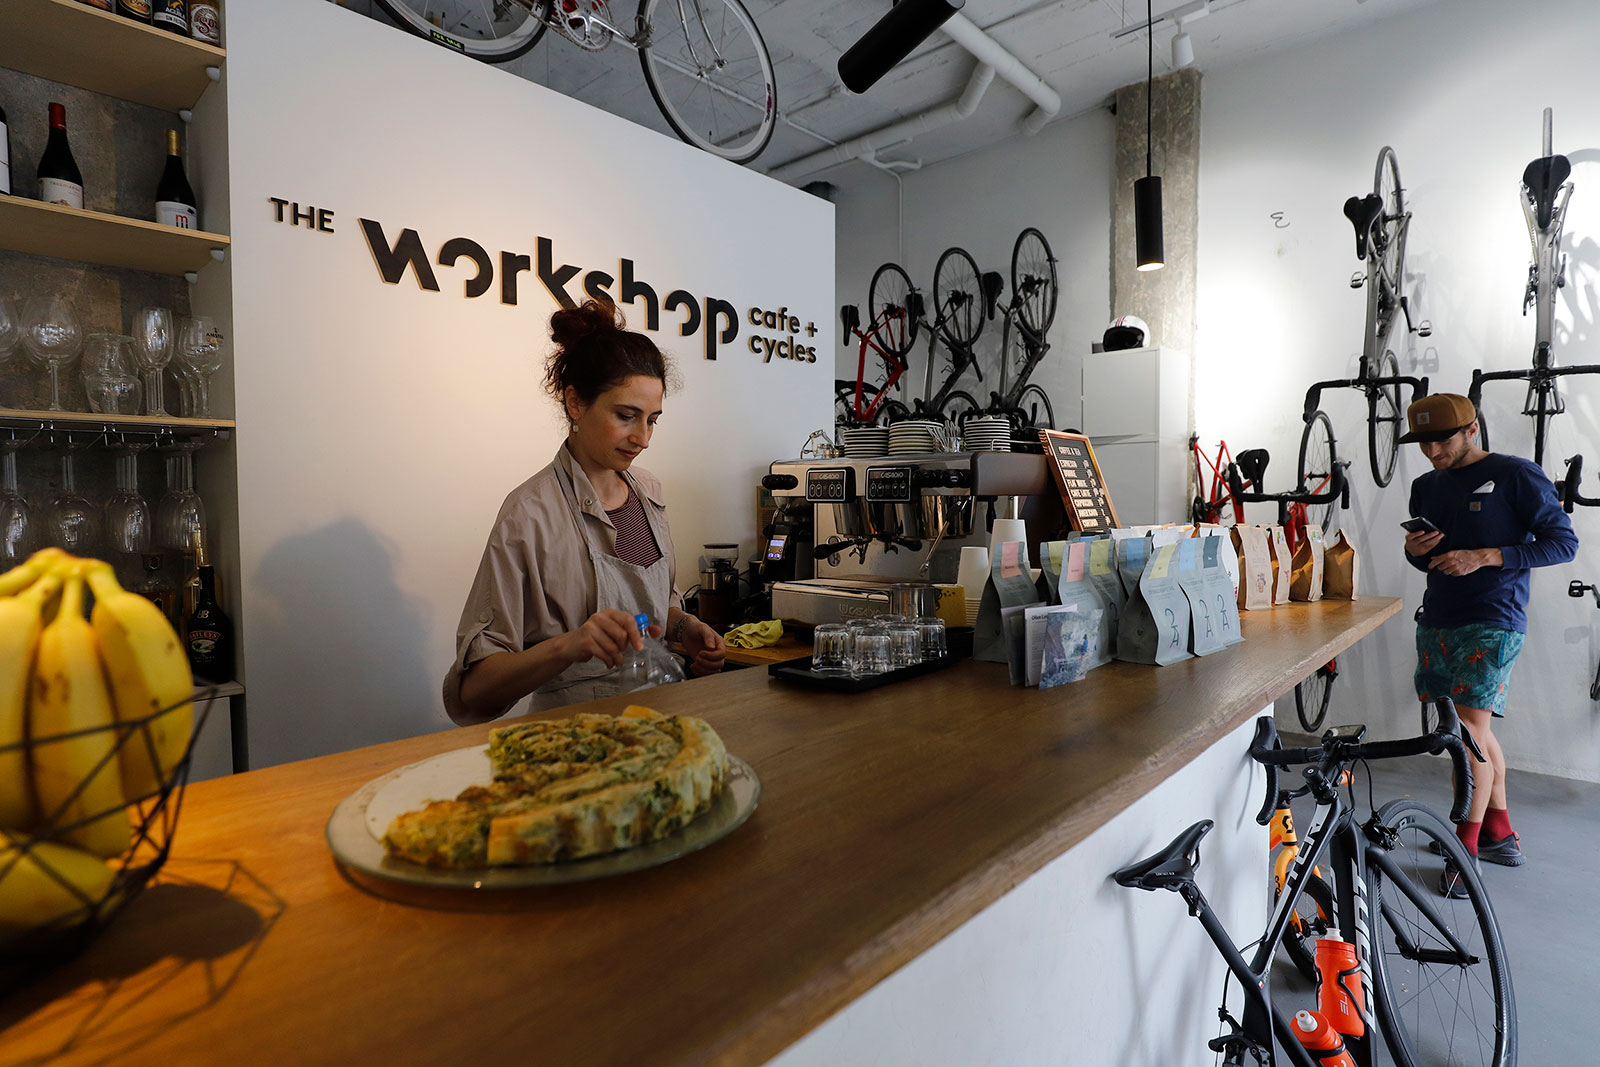 Employees at the Cafe + Cycles restaurant in Palm de Mallorca, Spain, prepare the interior for reopening.